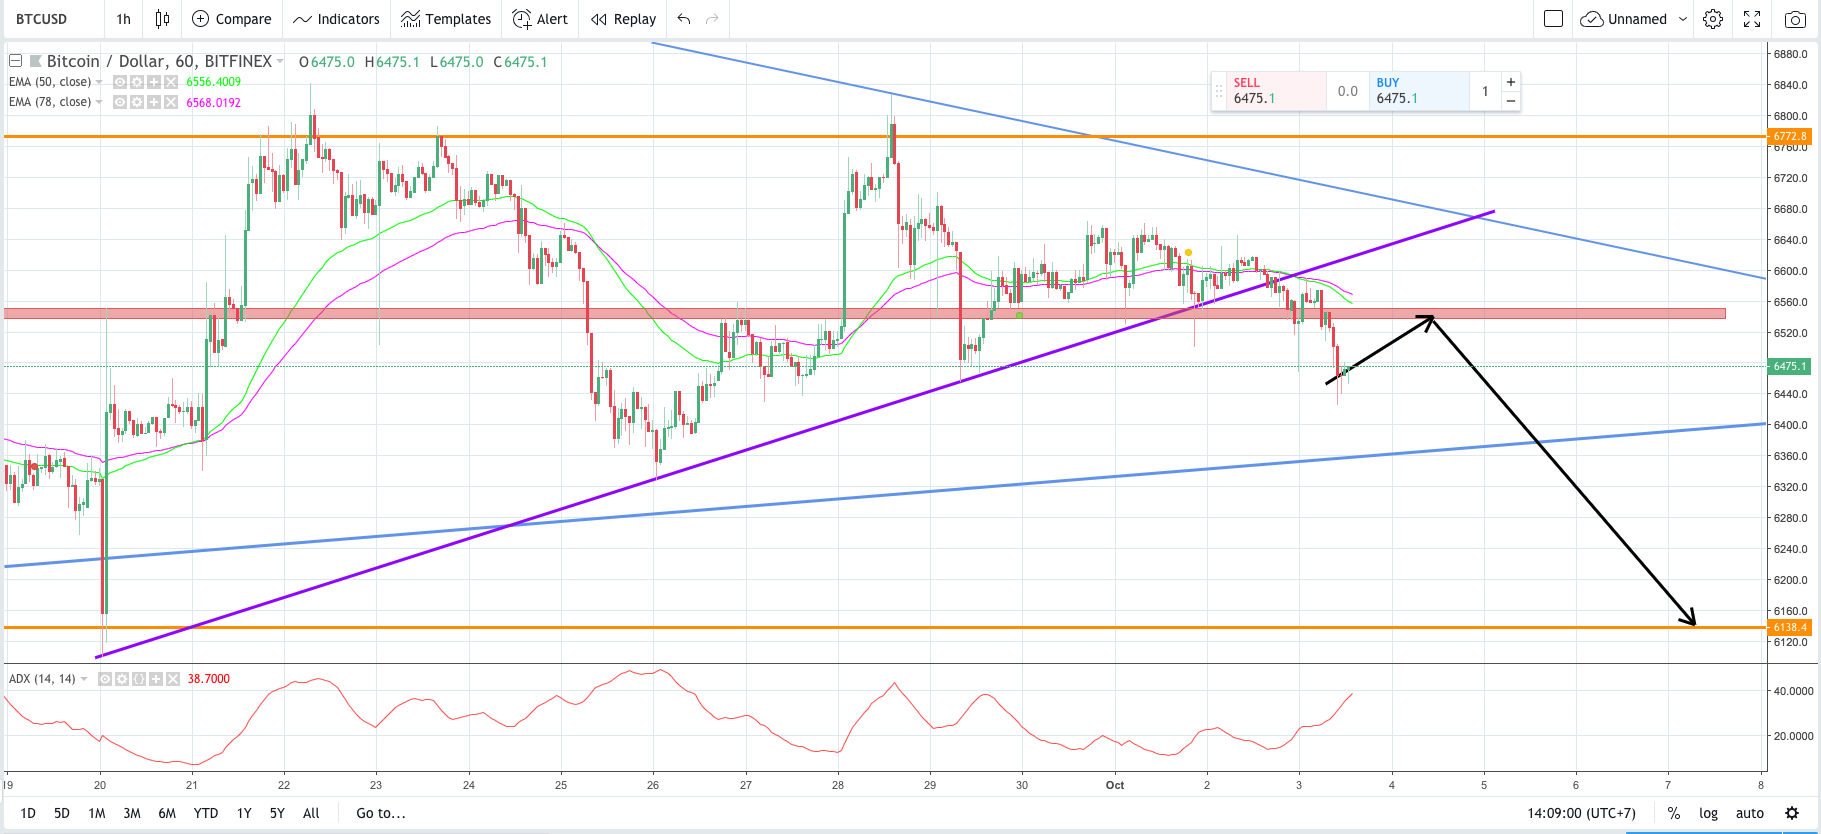 bitcoin, btc, bitcoin price forecast, btc price analysis, bitcoin otc, bloomberg record, otc